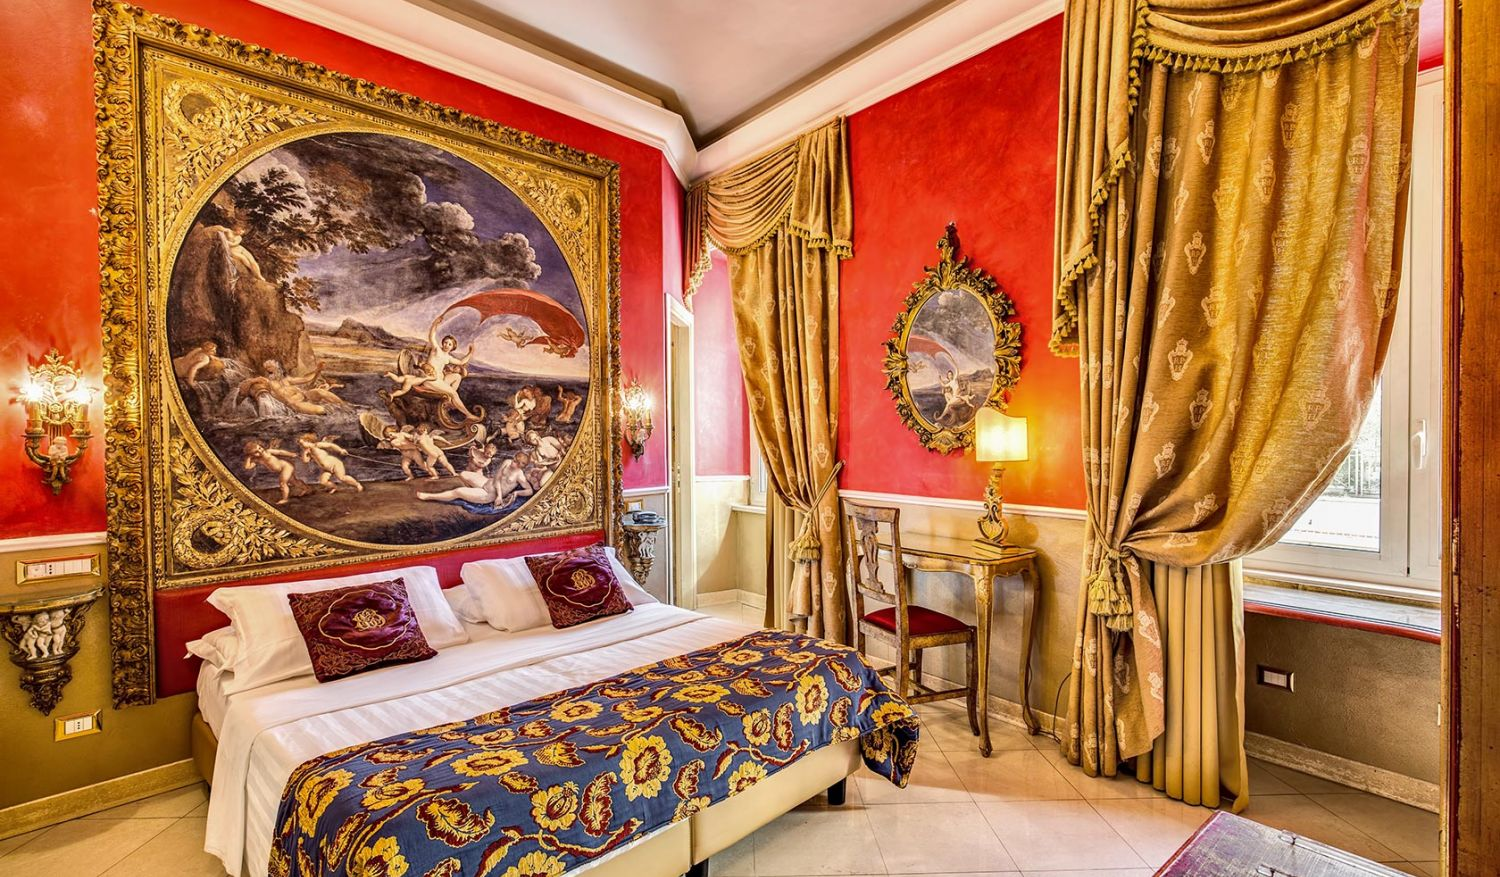 Double room to stay in Rome